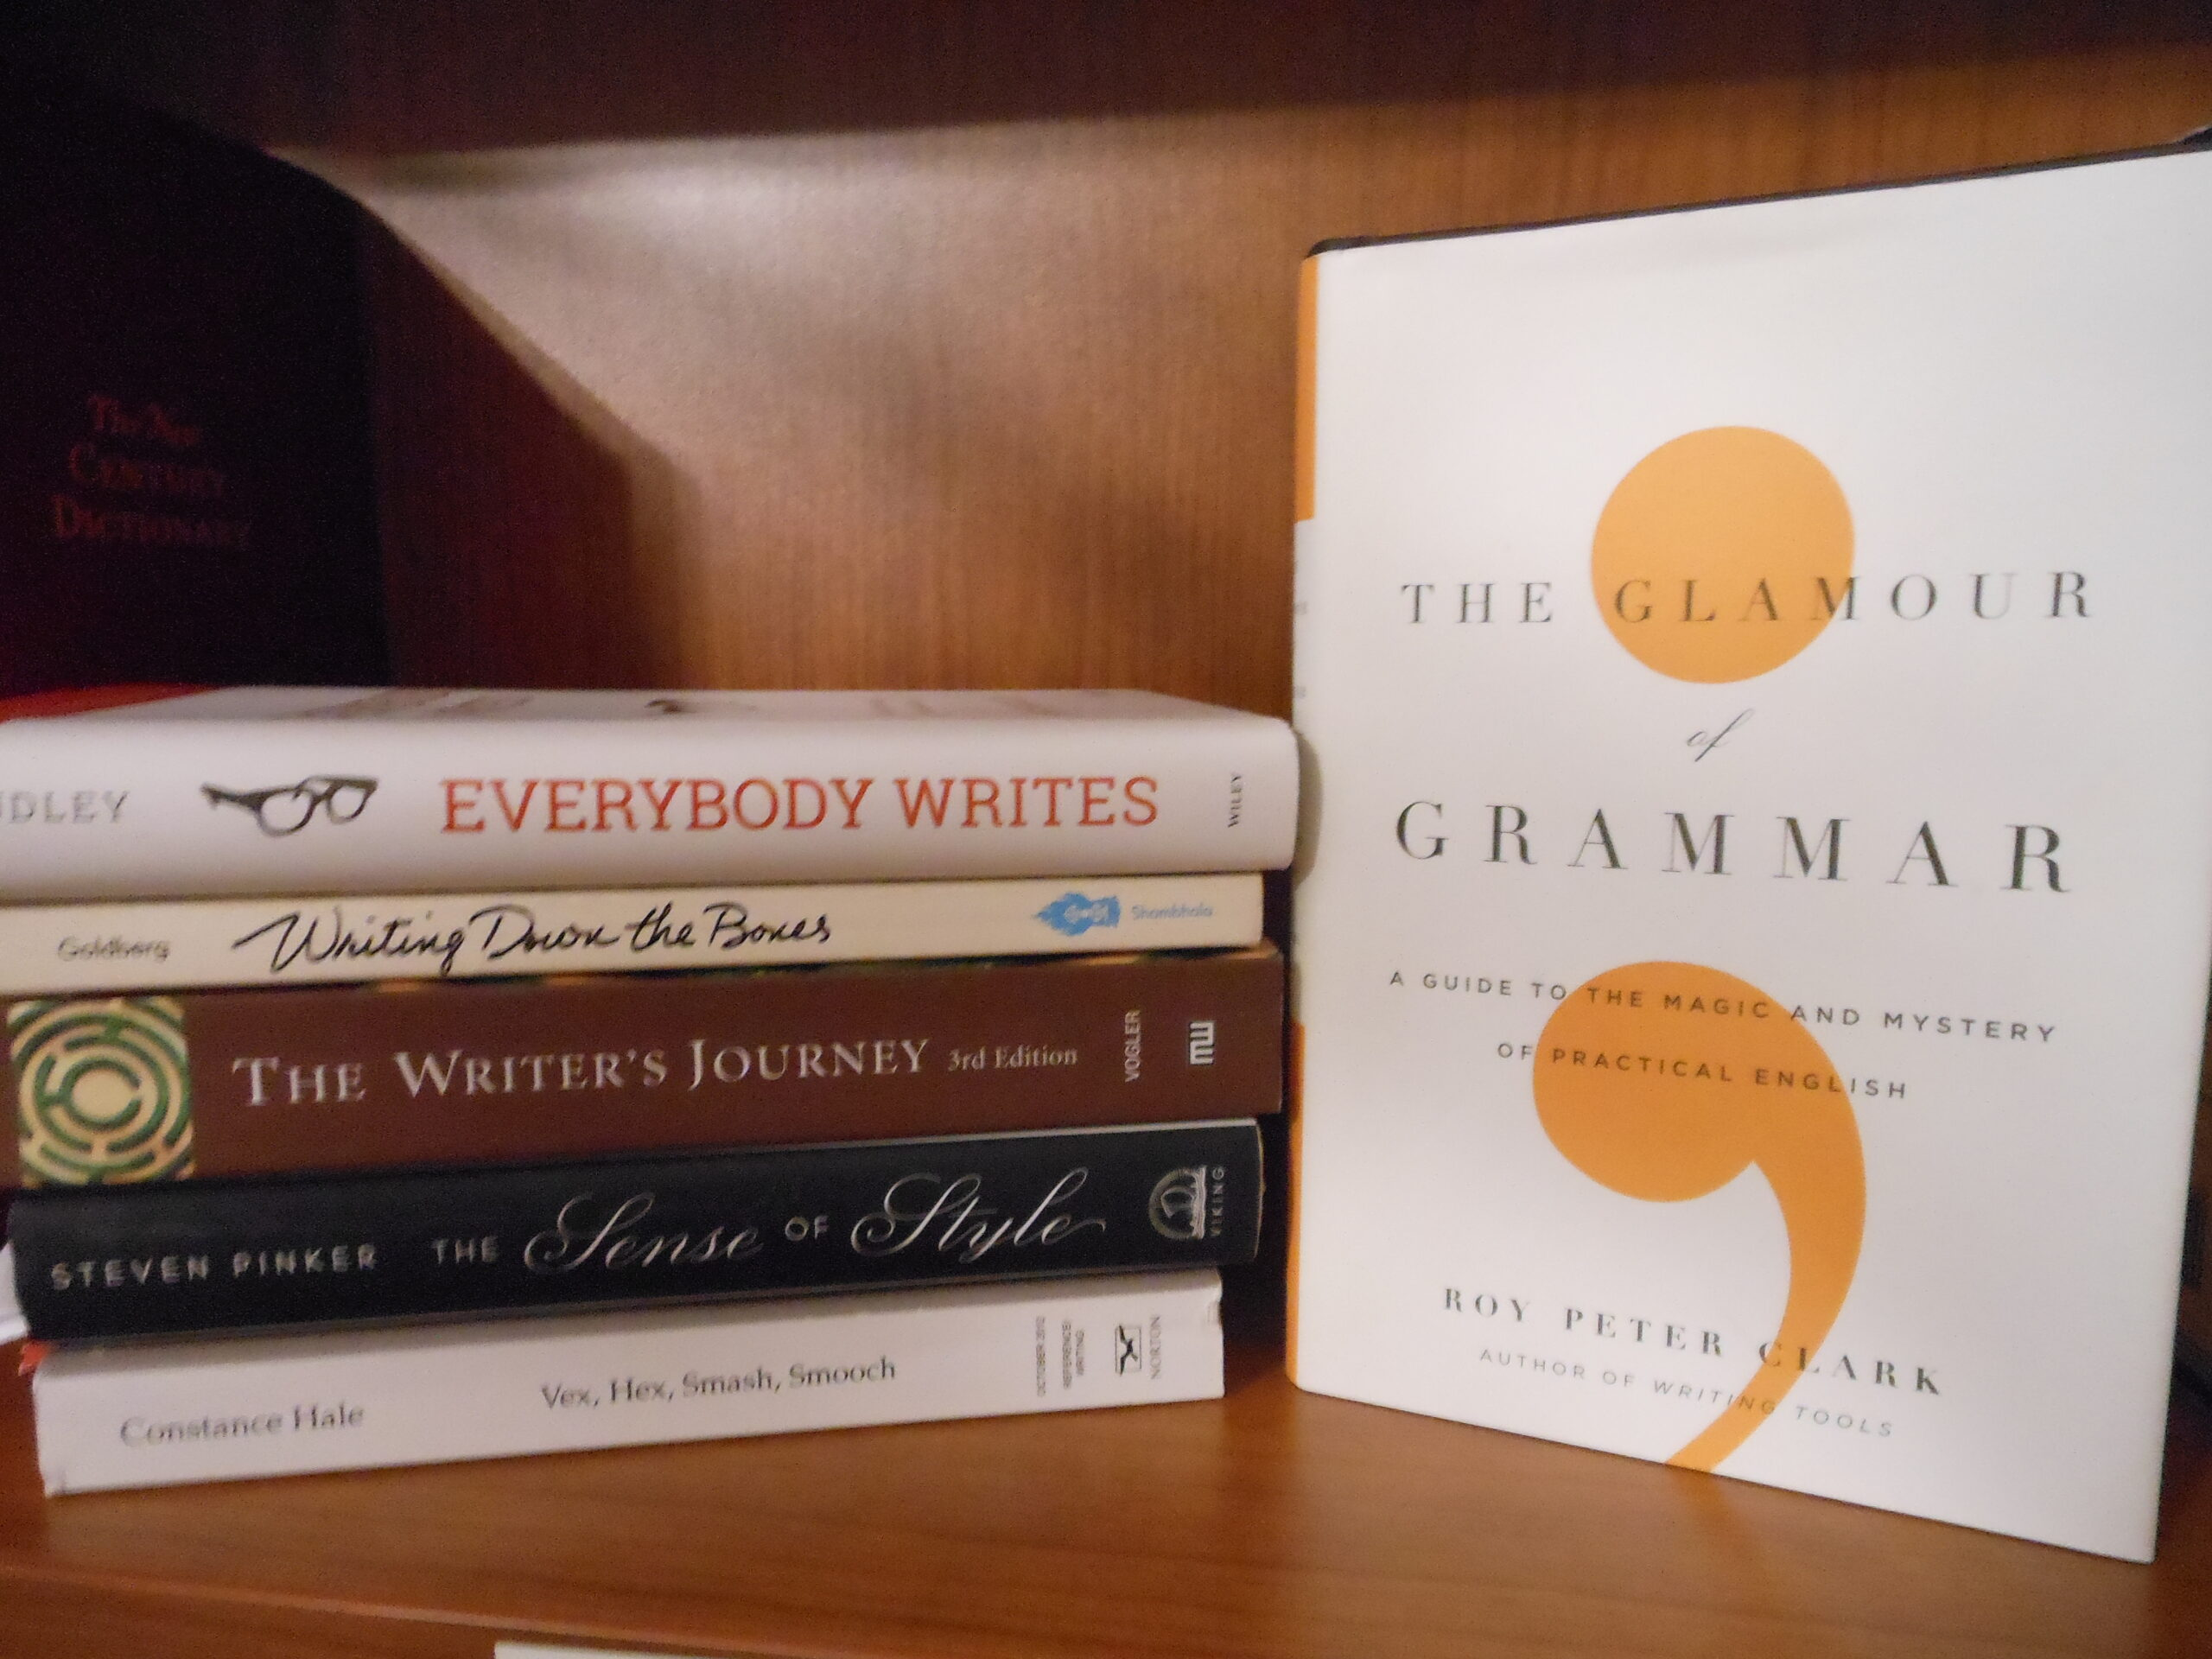 Books in a stack: Everybody Writes, Writing Down the Bownes, The Writer's Journey, The Sense of Style, Vex, Hex, Smash, Smooch. One book standing upright: The Glamour of Grammar